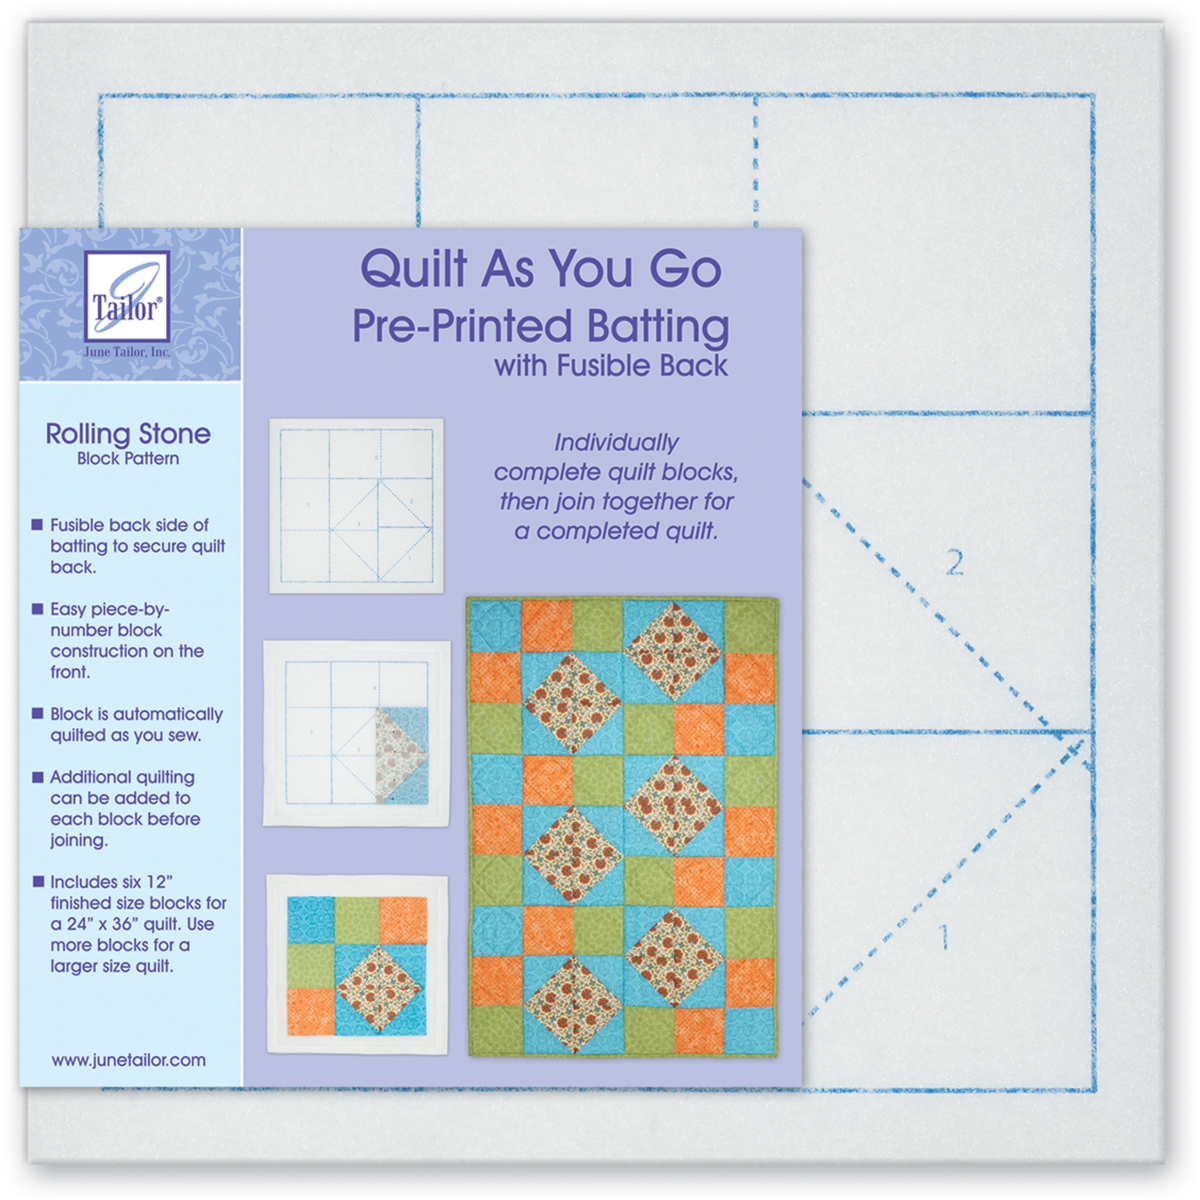 Quilt As You Go Printed Quilt Blocks On Batting-Rolling Stone